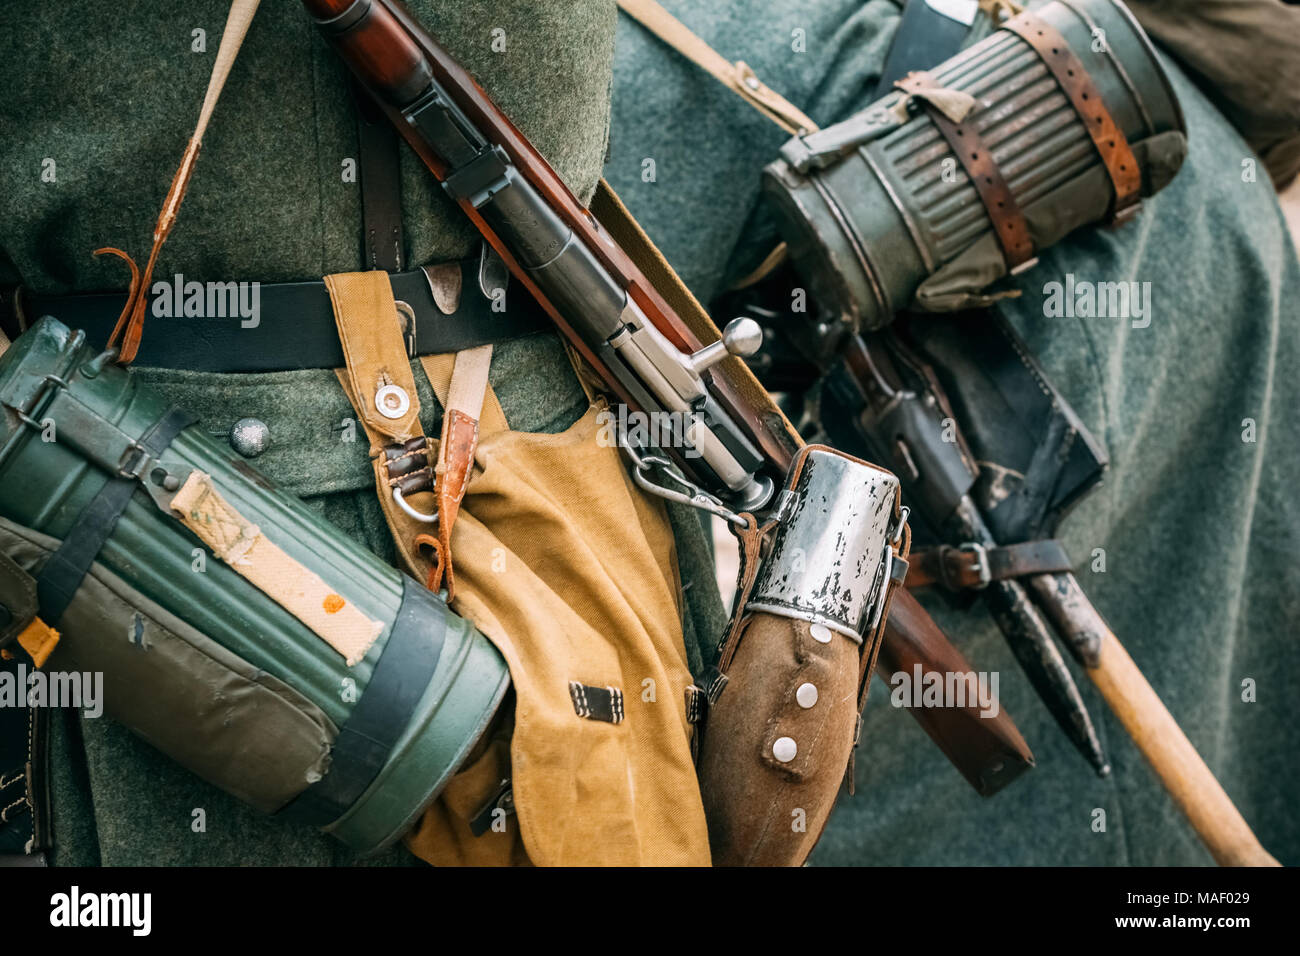 Second Face On Motorcycle Mask >> World War Ii Gas Mask Stock Photos & World War Ii Gas Mask Stock Images - Alamy